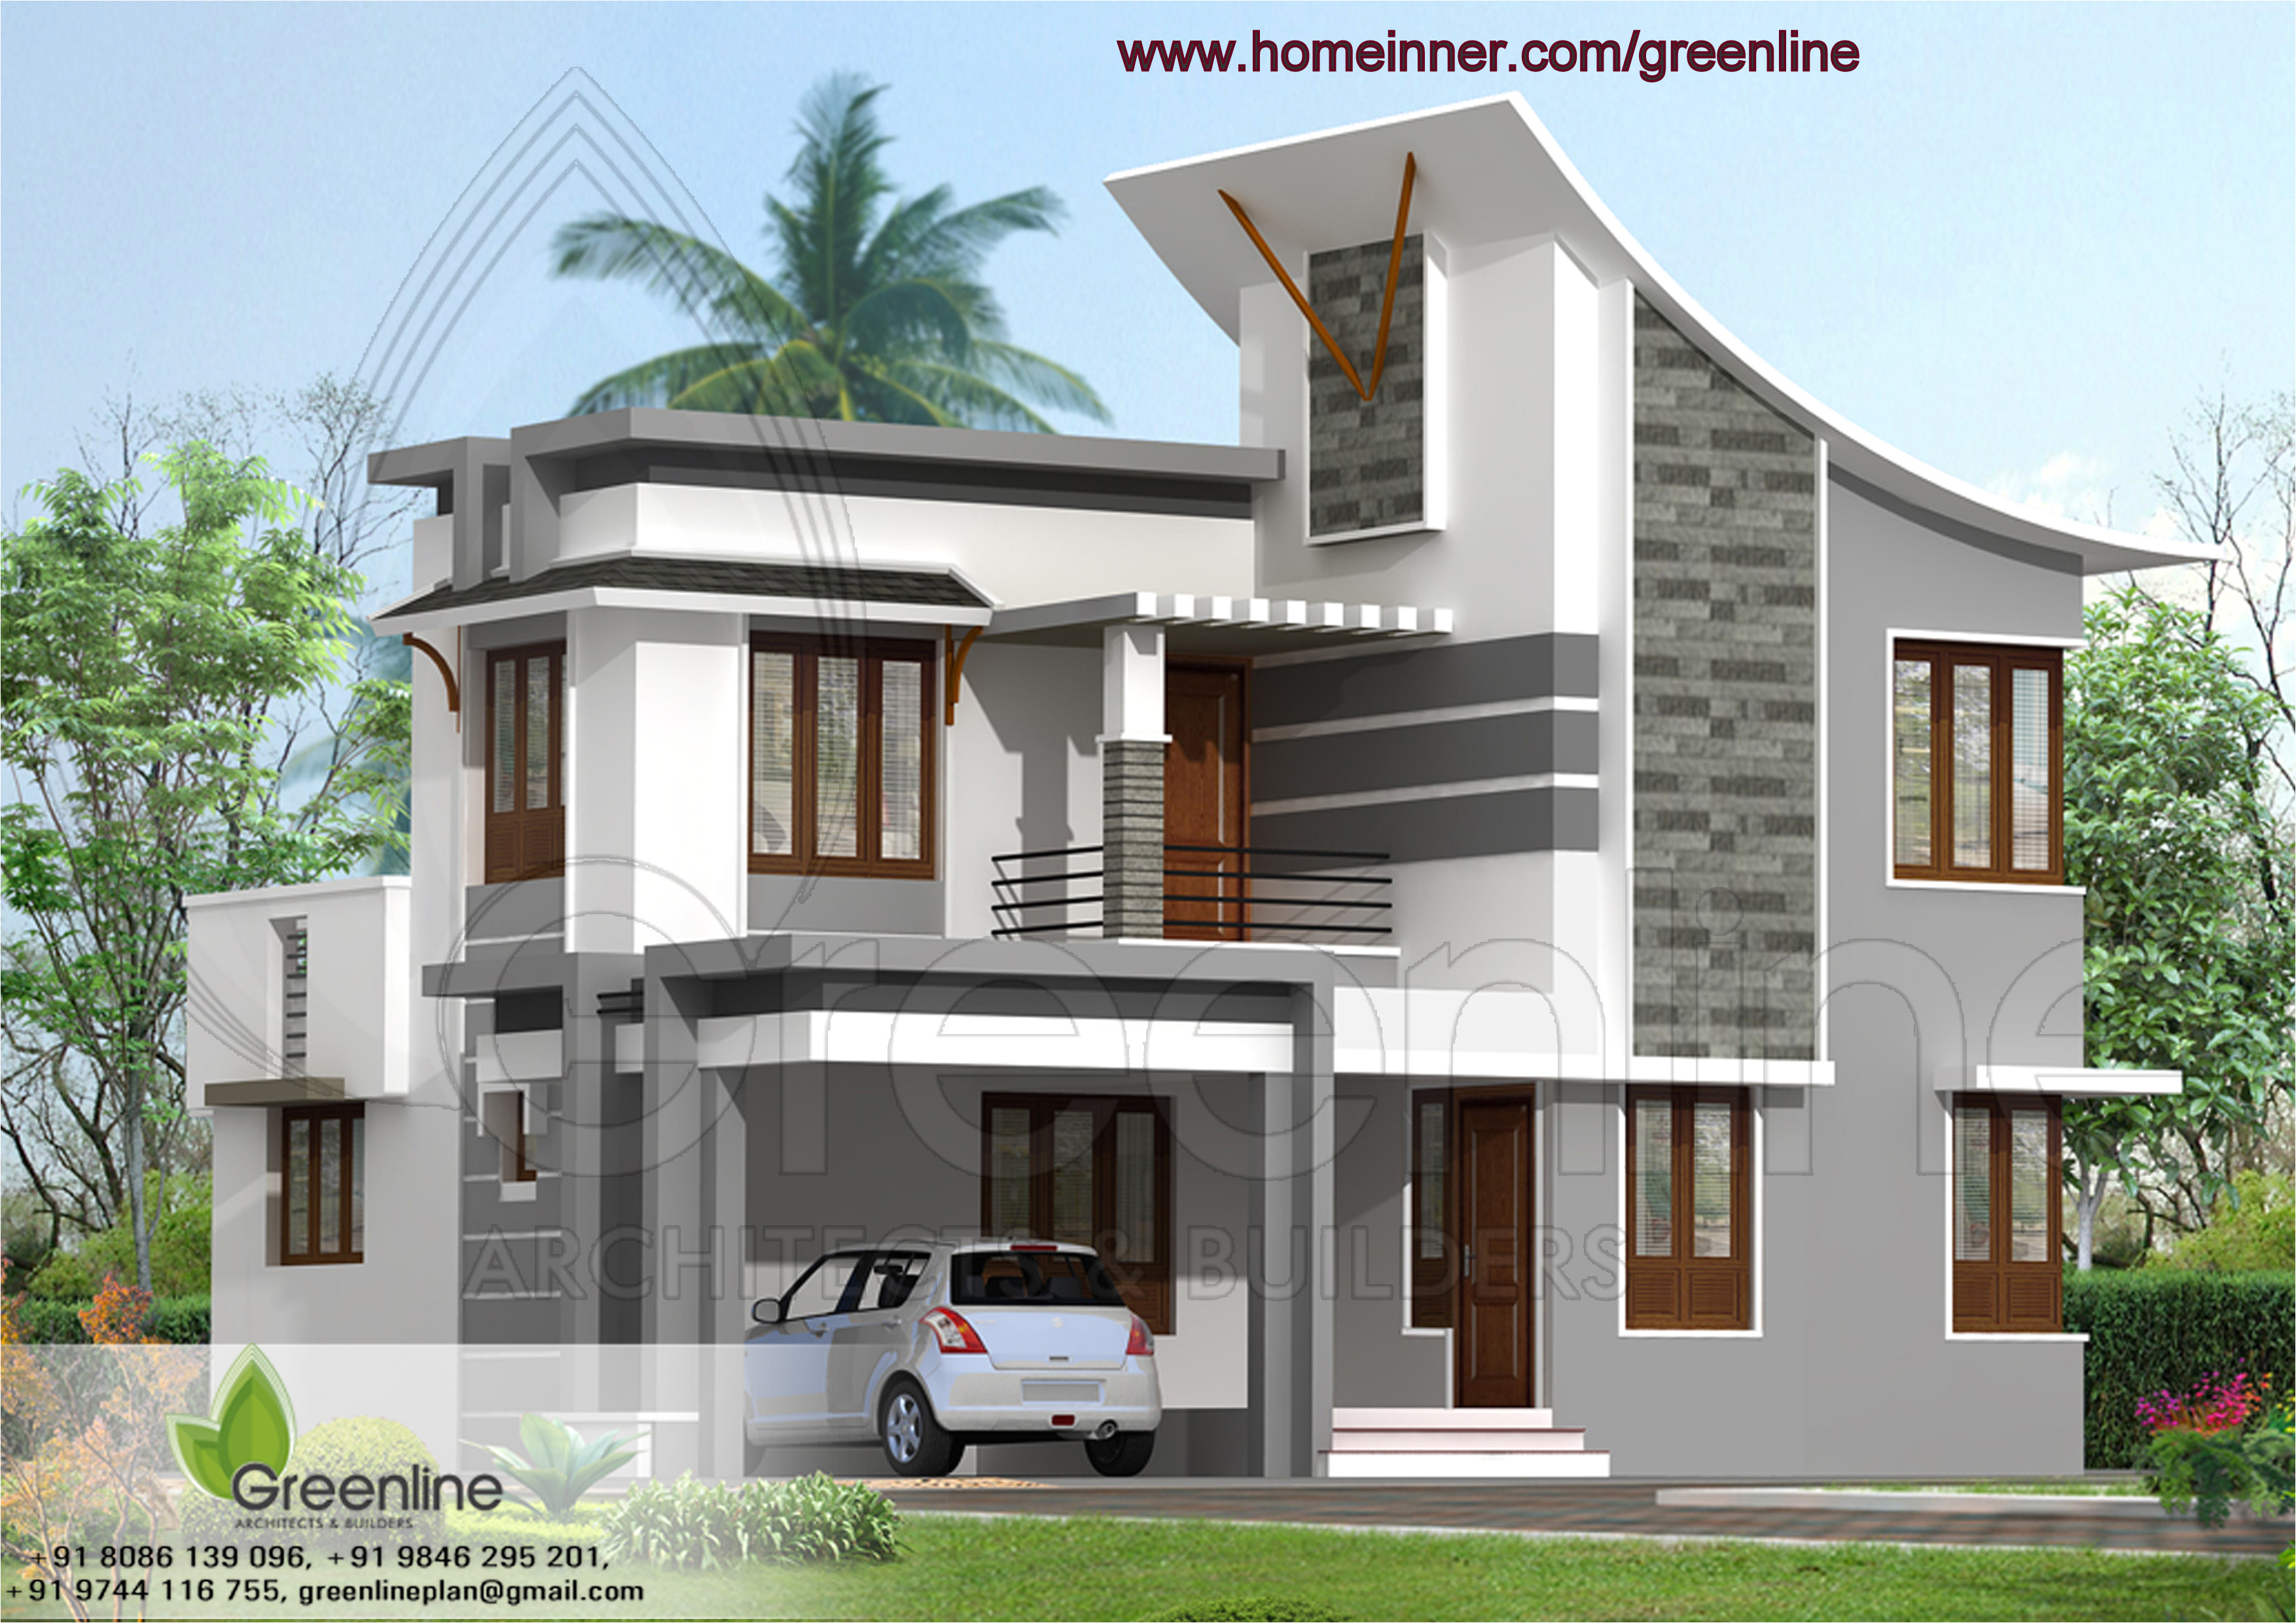 South Indian Home Plans and Designs Modern south Indian House Plans